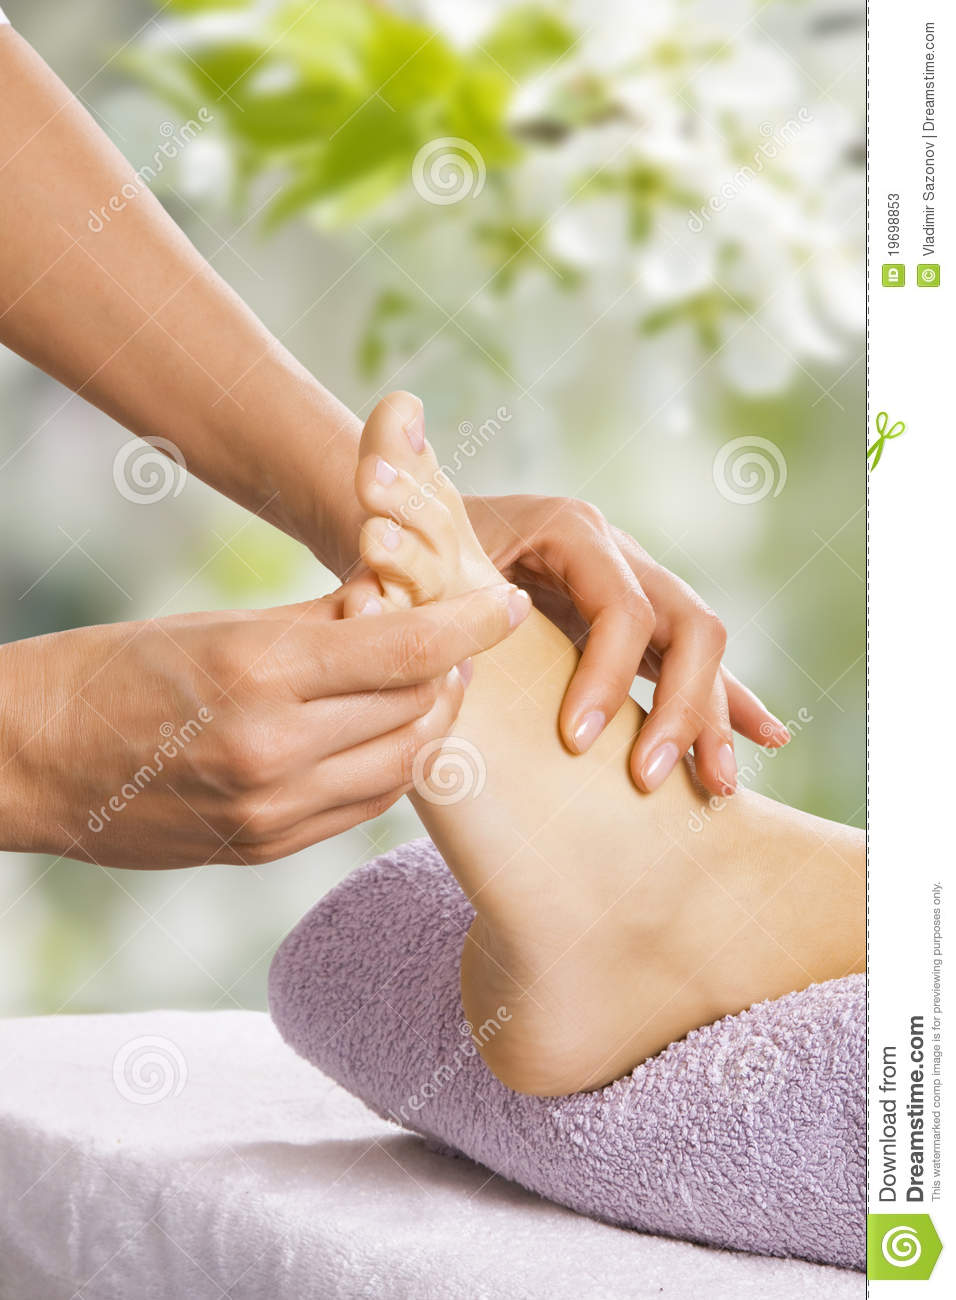 Foot Massage In The Spa Salon Stock Image - Image: 19698853